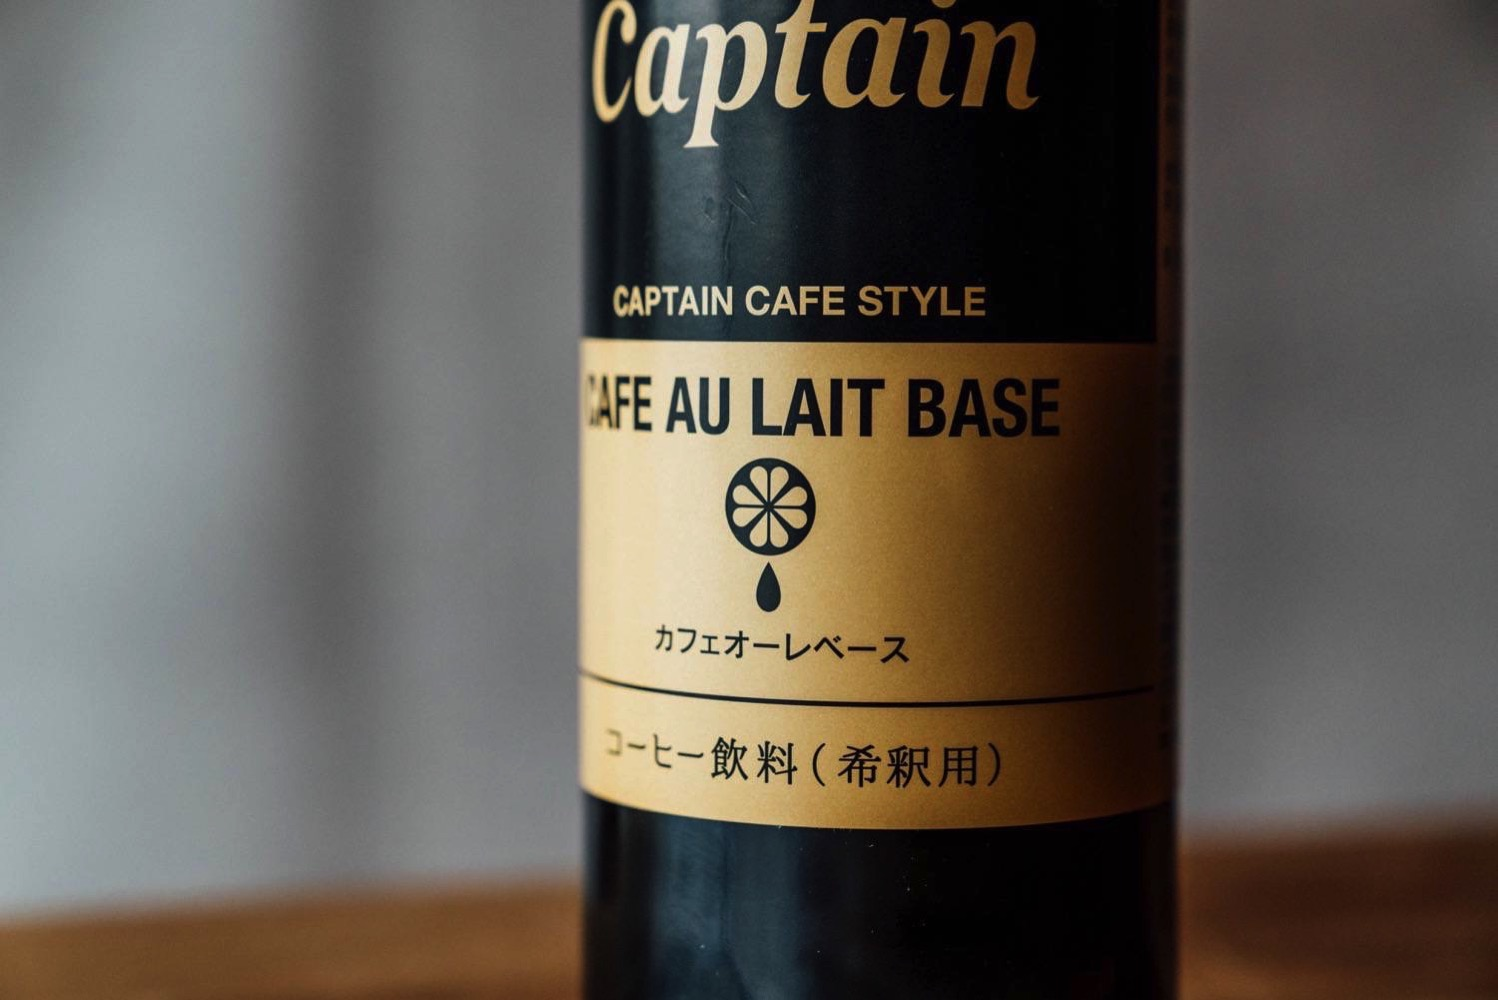 Captain cafe au lait base 3